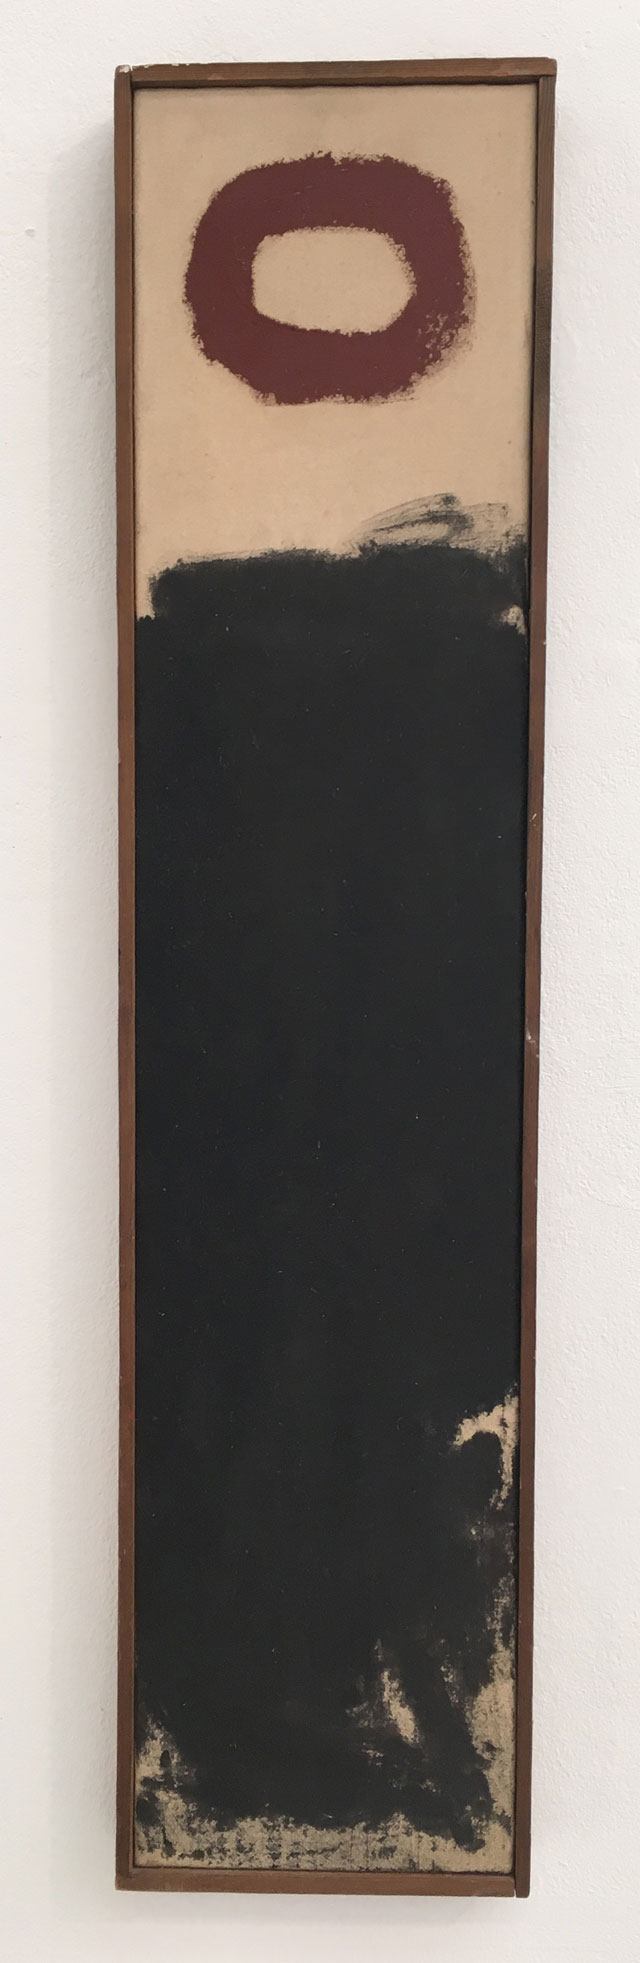 Geoffrey Rigden. Bop, 1978. Acrylic on canvas, 90 x 21 cm. Photograph: © APT Gallery.